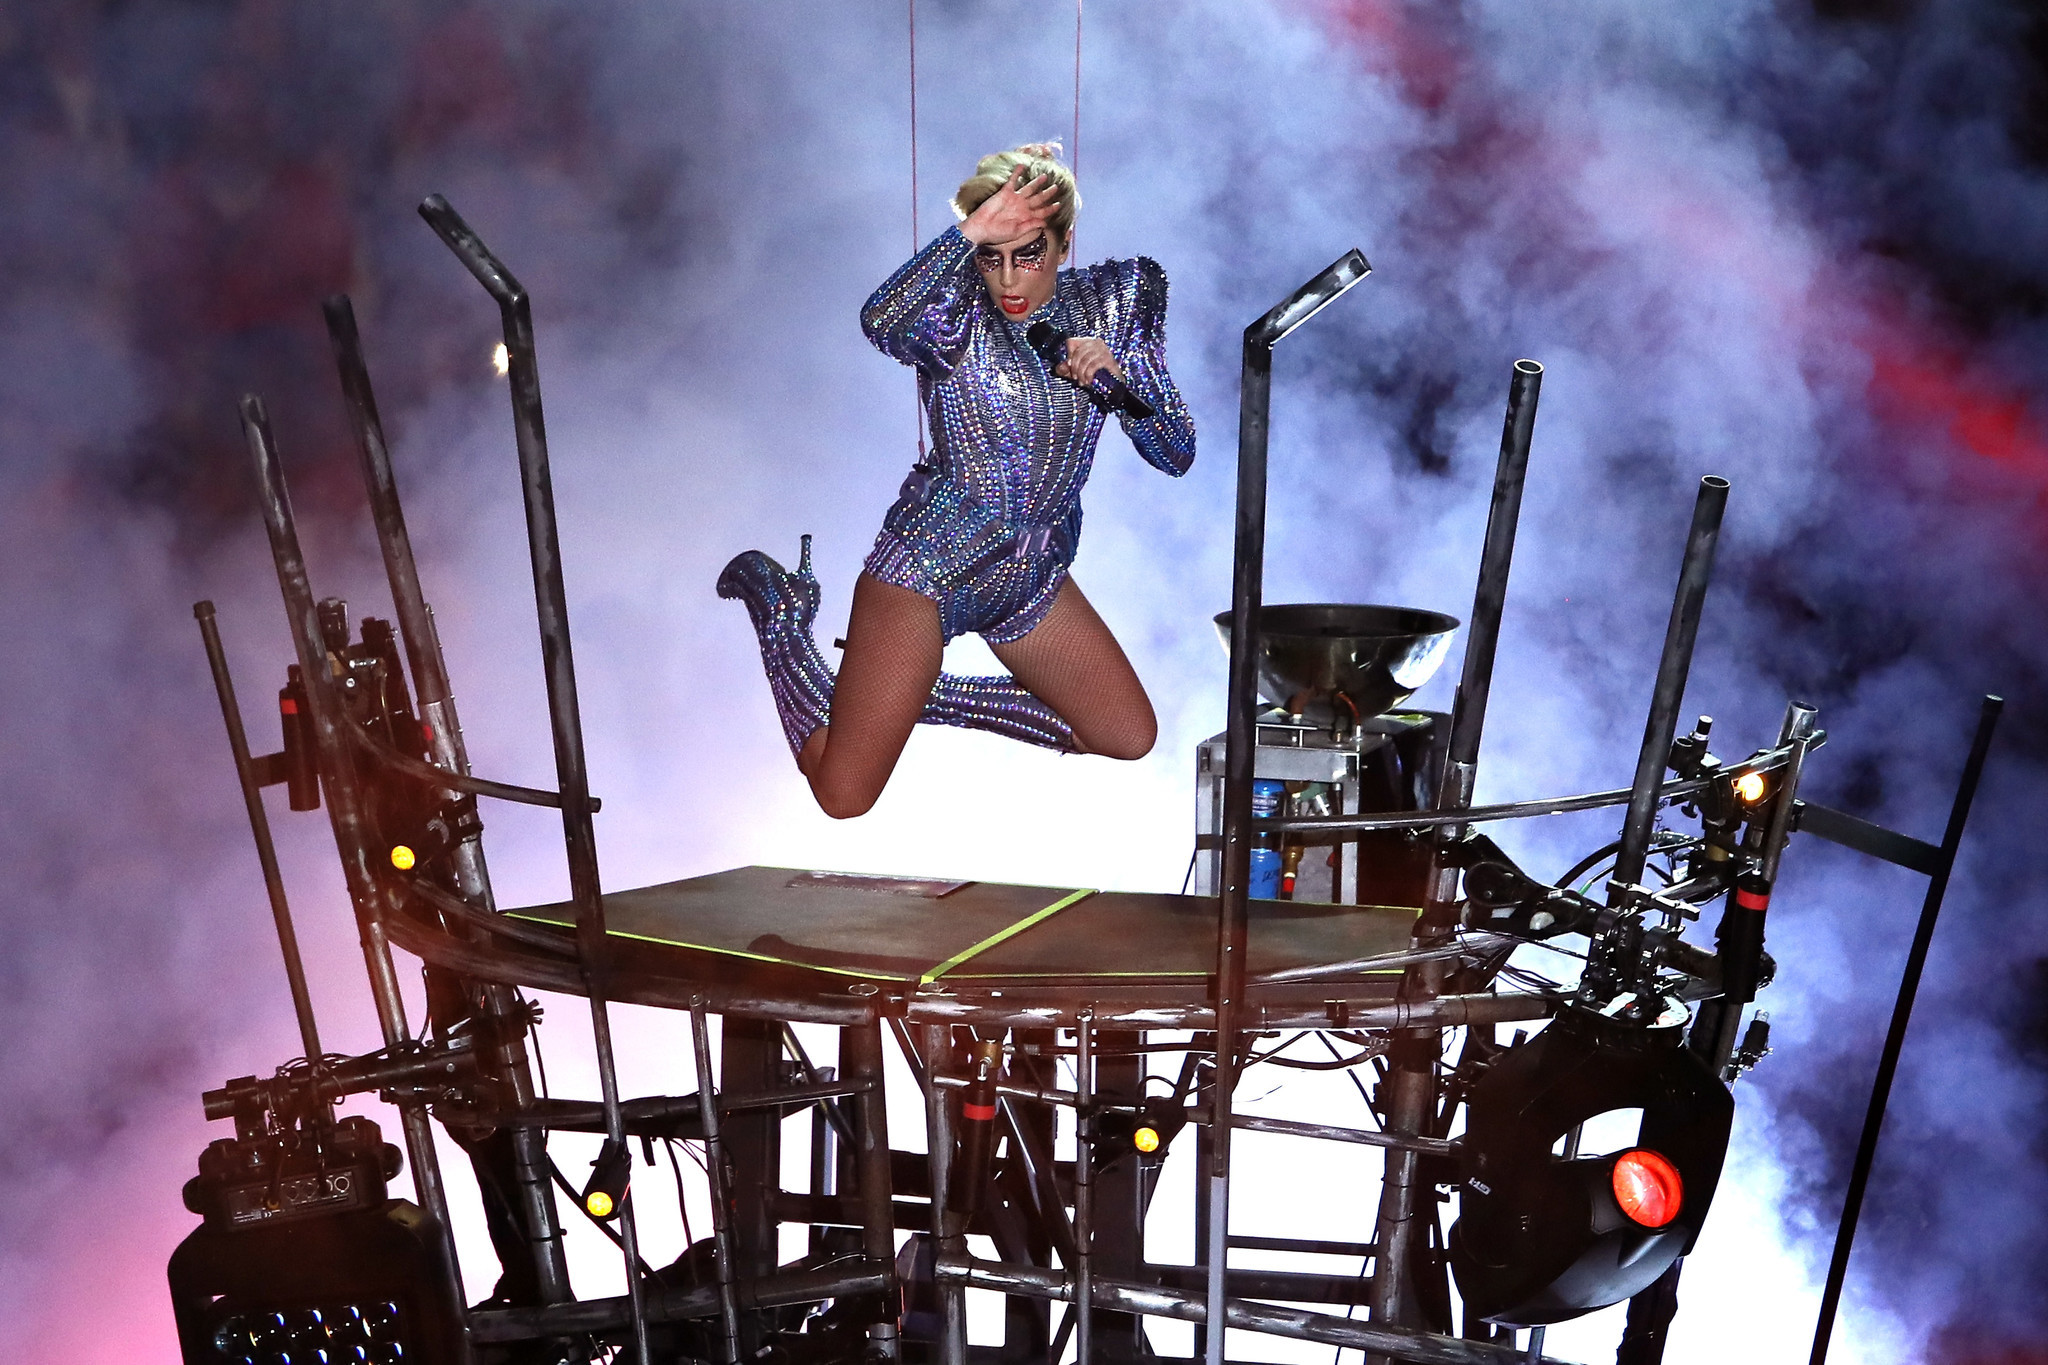 Lady Gaga elevates Super Bowl halftime show - Chicago Tribune